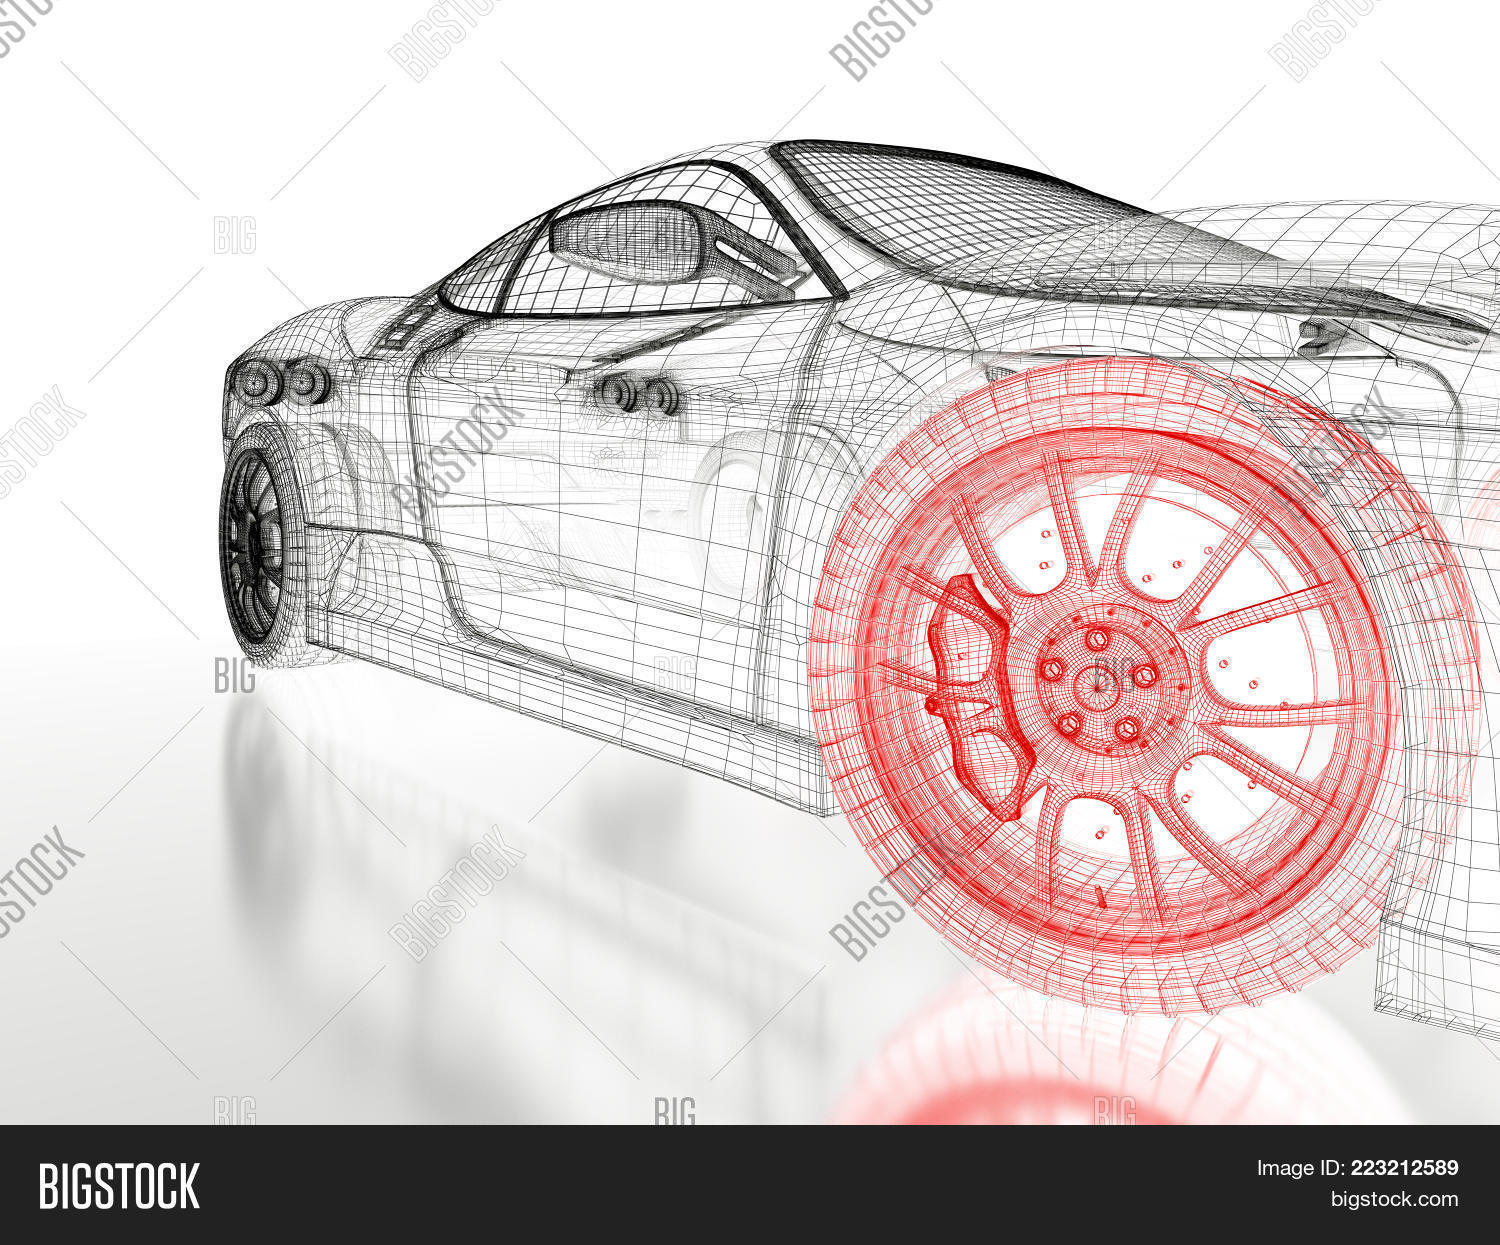 Car vehicle 3d image photo free trial bigstock car vehicle 3d blueprint mesh model with a red wheel tire on a white background malvernweather Gallery